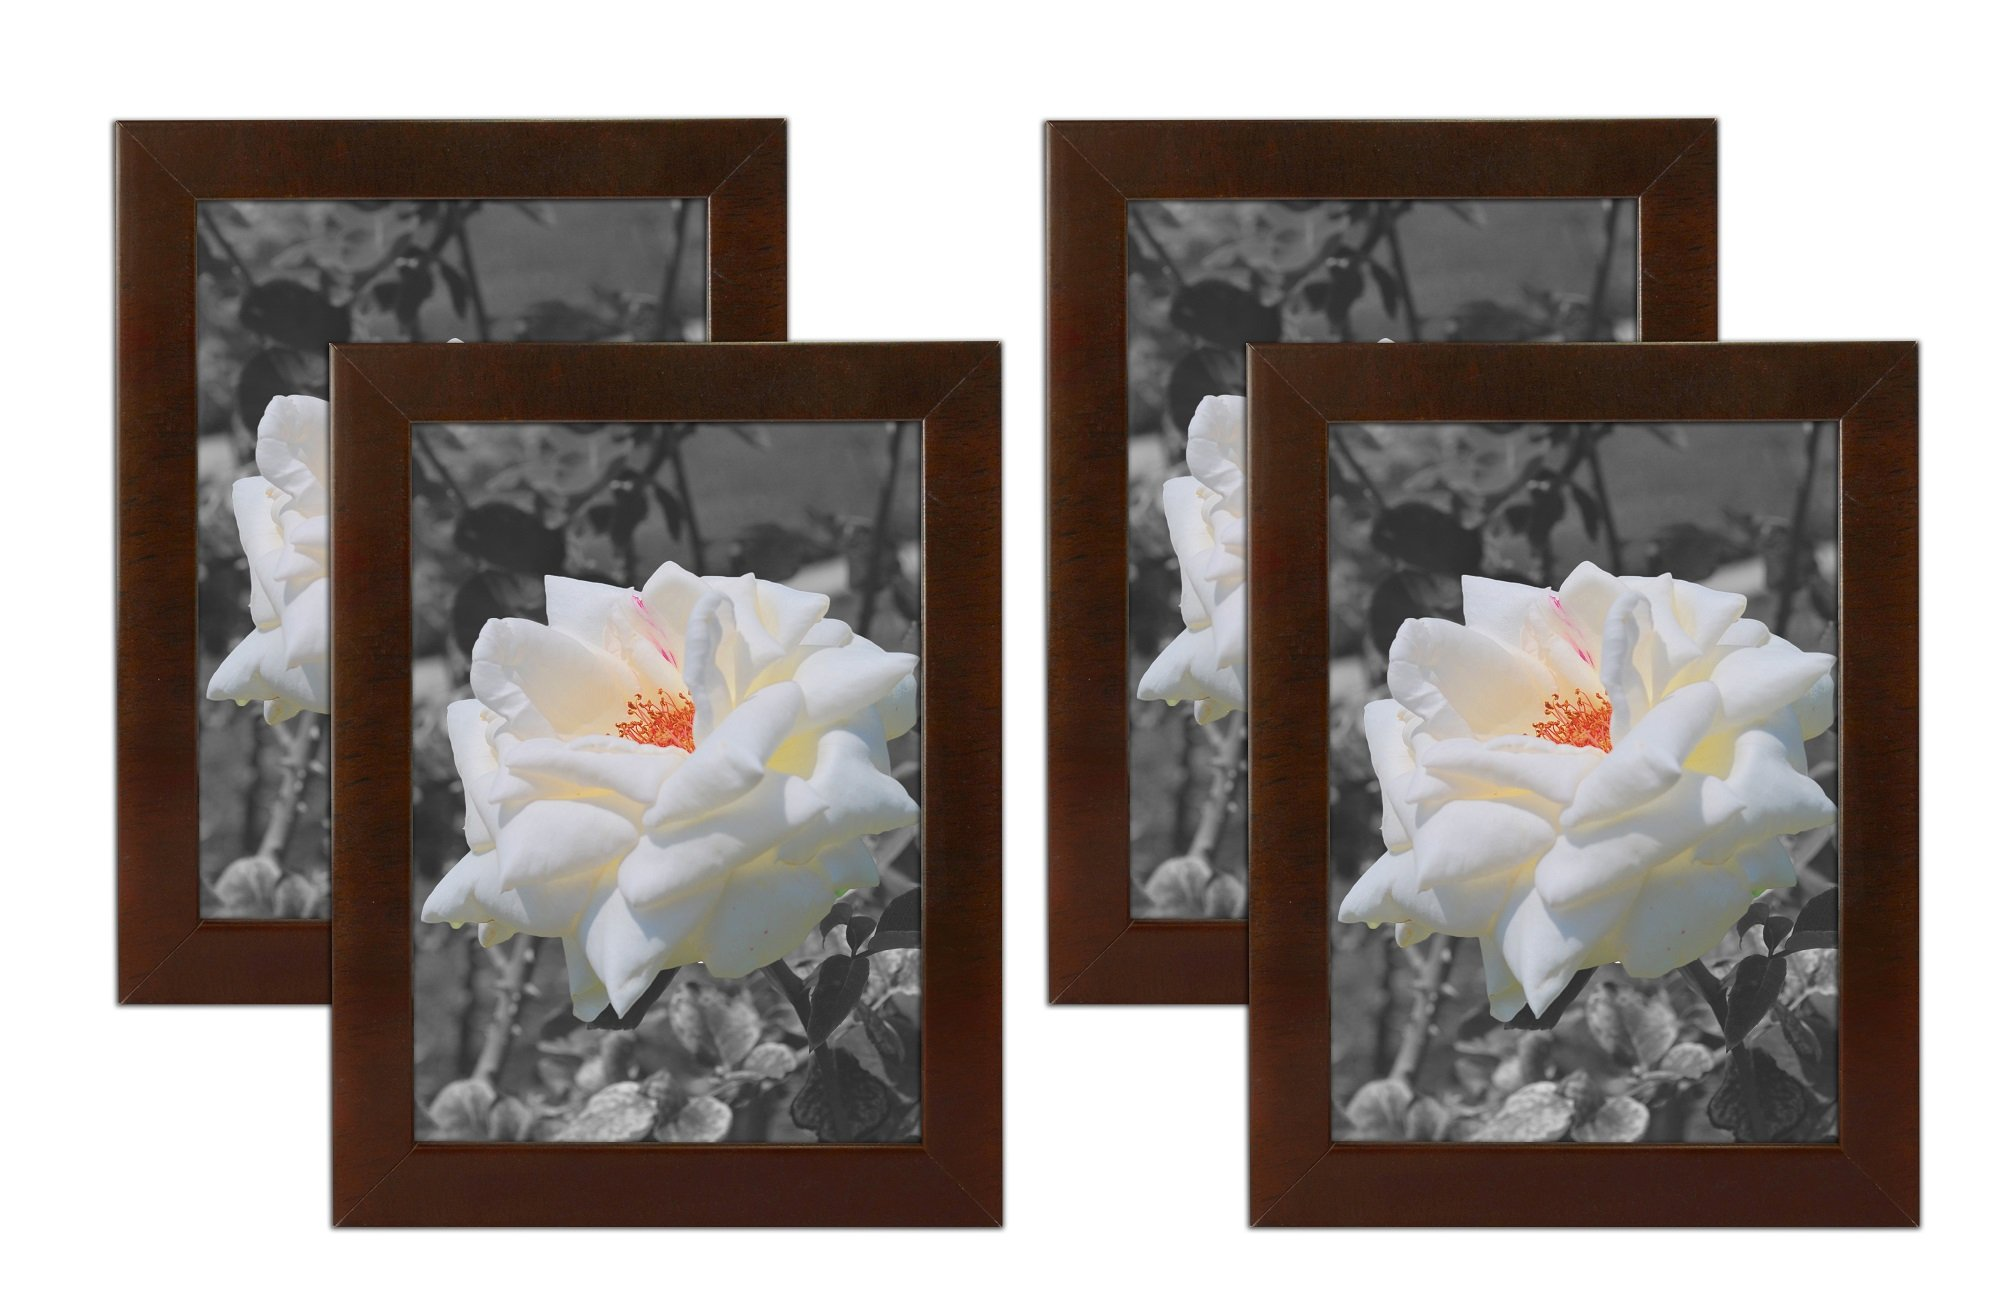 Golden State Art Set of 4, 5x7 Simple Wood Picture Frame - Table/Desk Top - Easel Stand - Back Hanger - Wall Display - Espresso Color - Real Glass 5x7 (4-Pack), Espresso